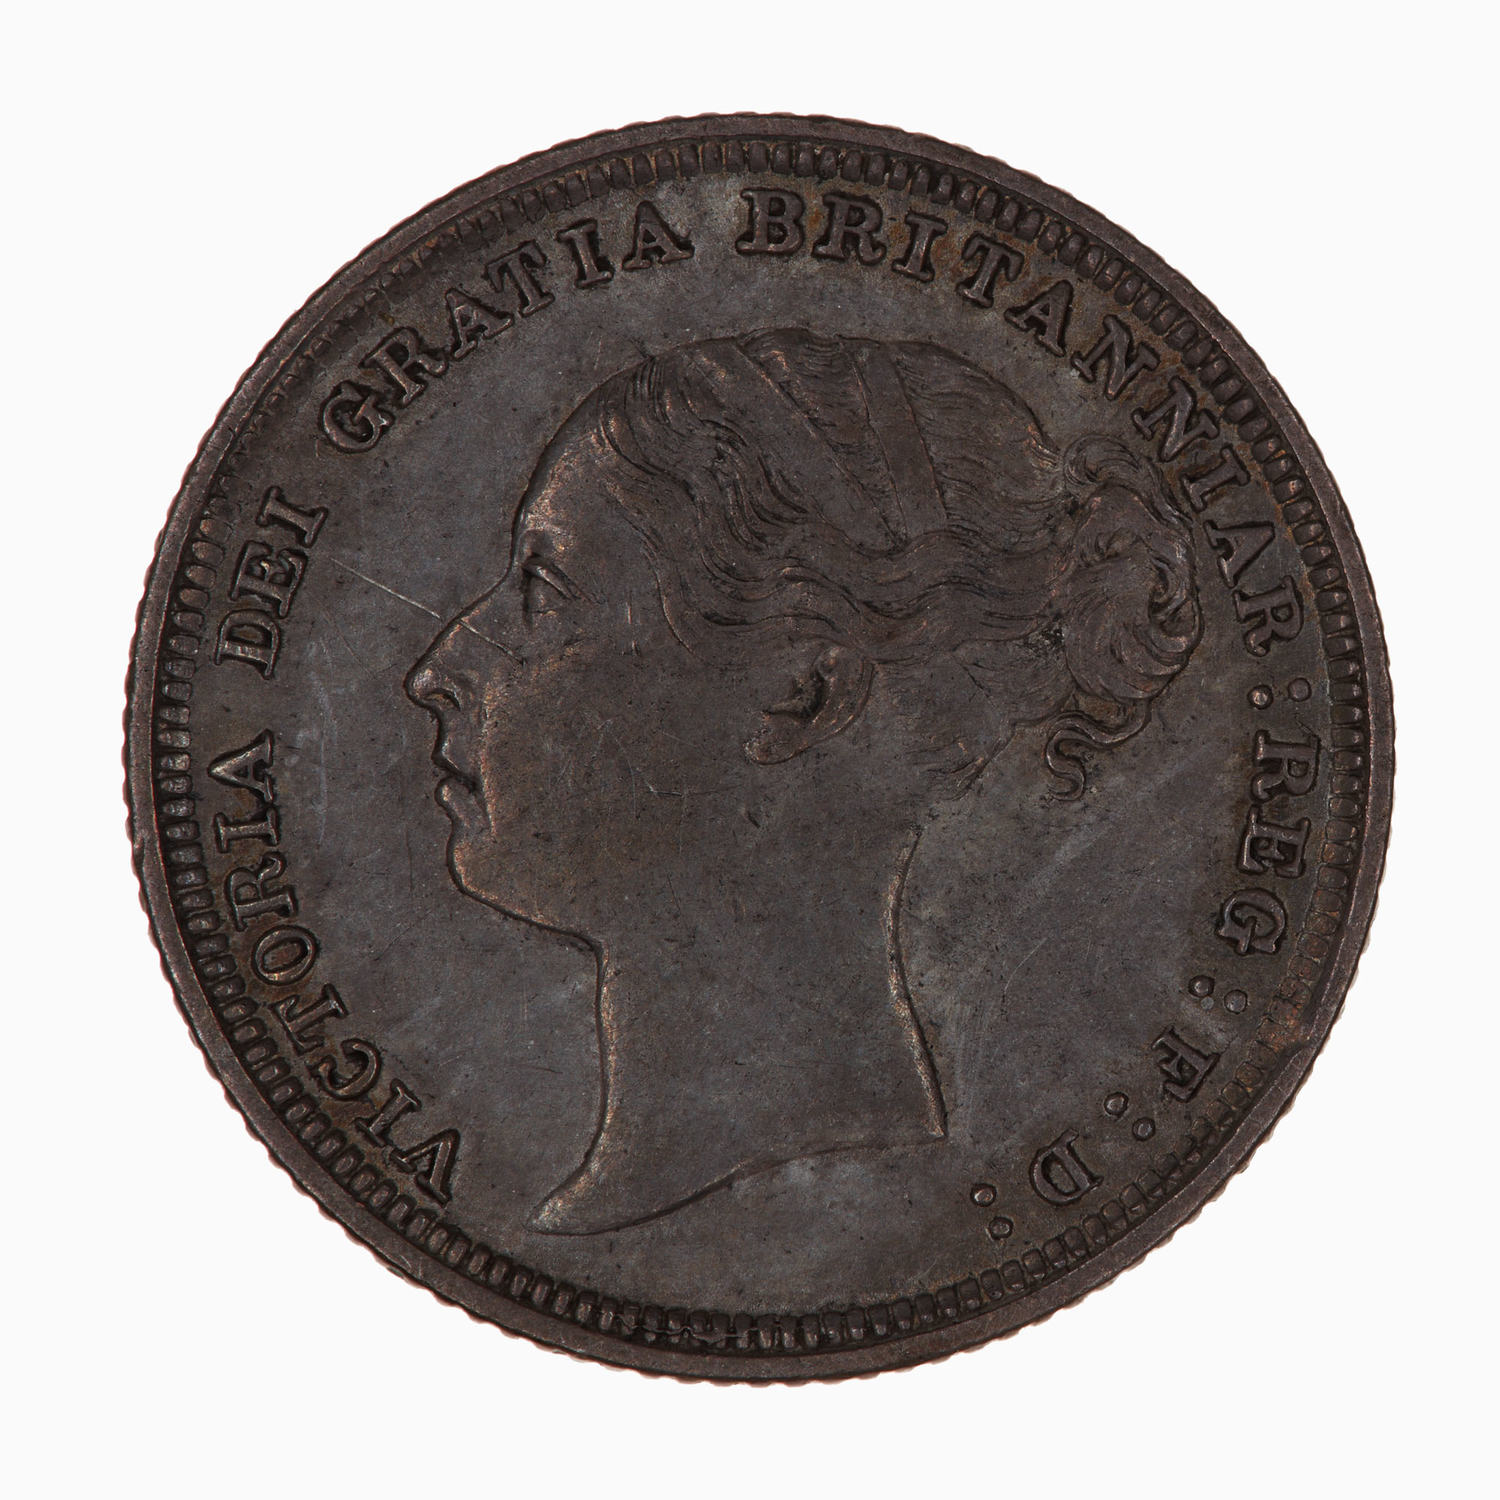 Sixpence 1887 Old Wreath Design: Photo Coin - Sixpence, Queen Victoria, Great Britain, 1887